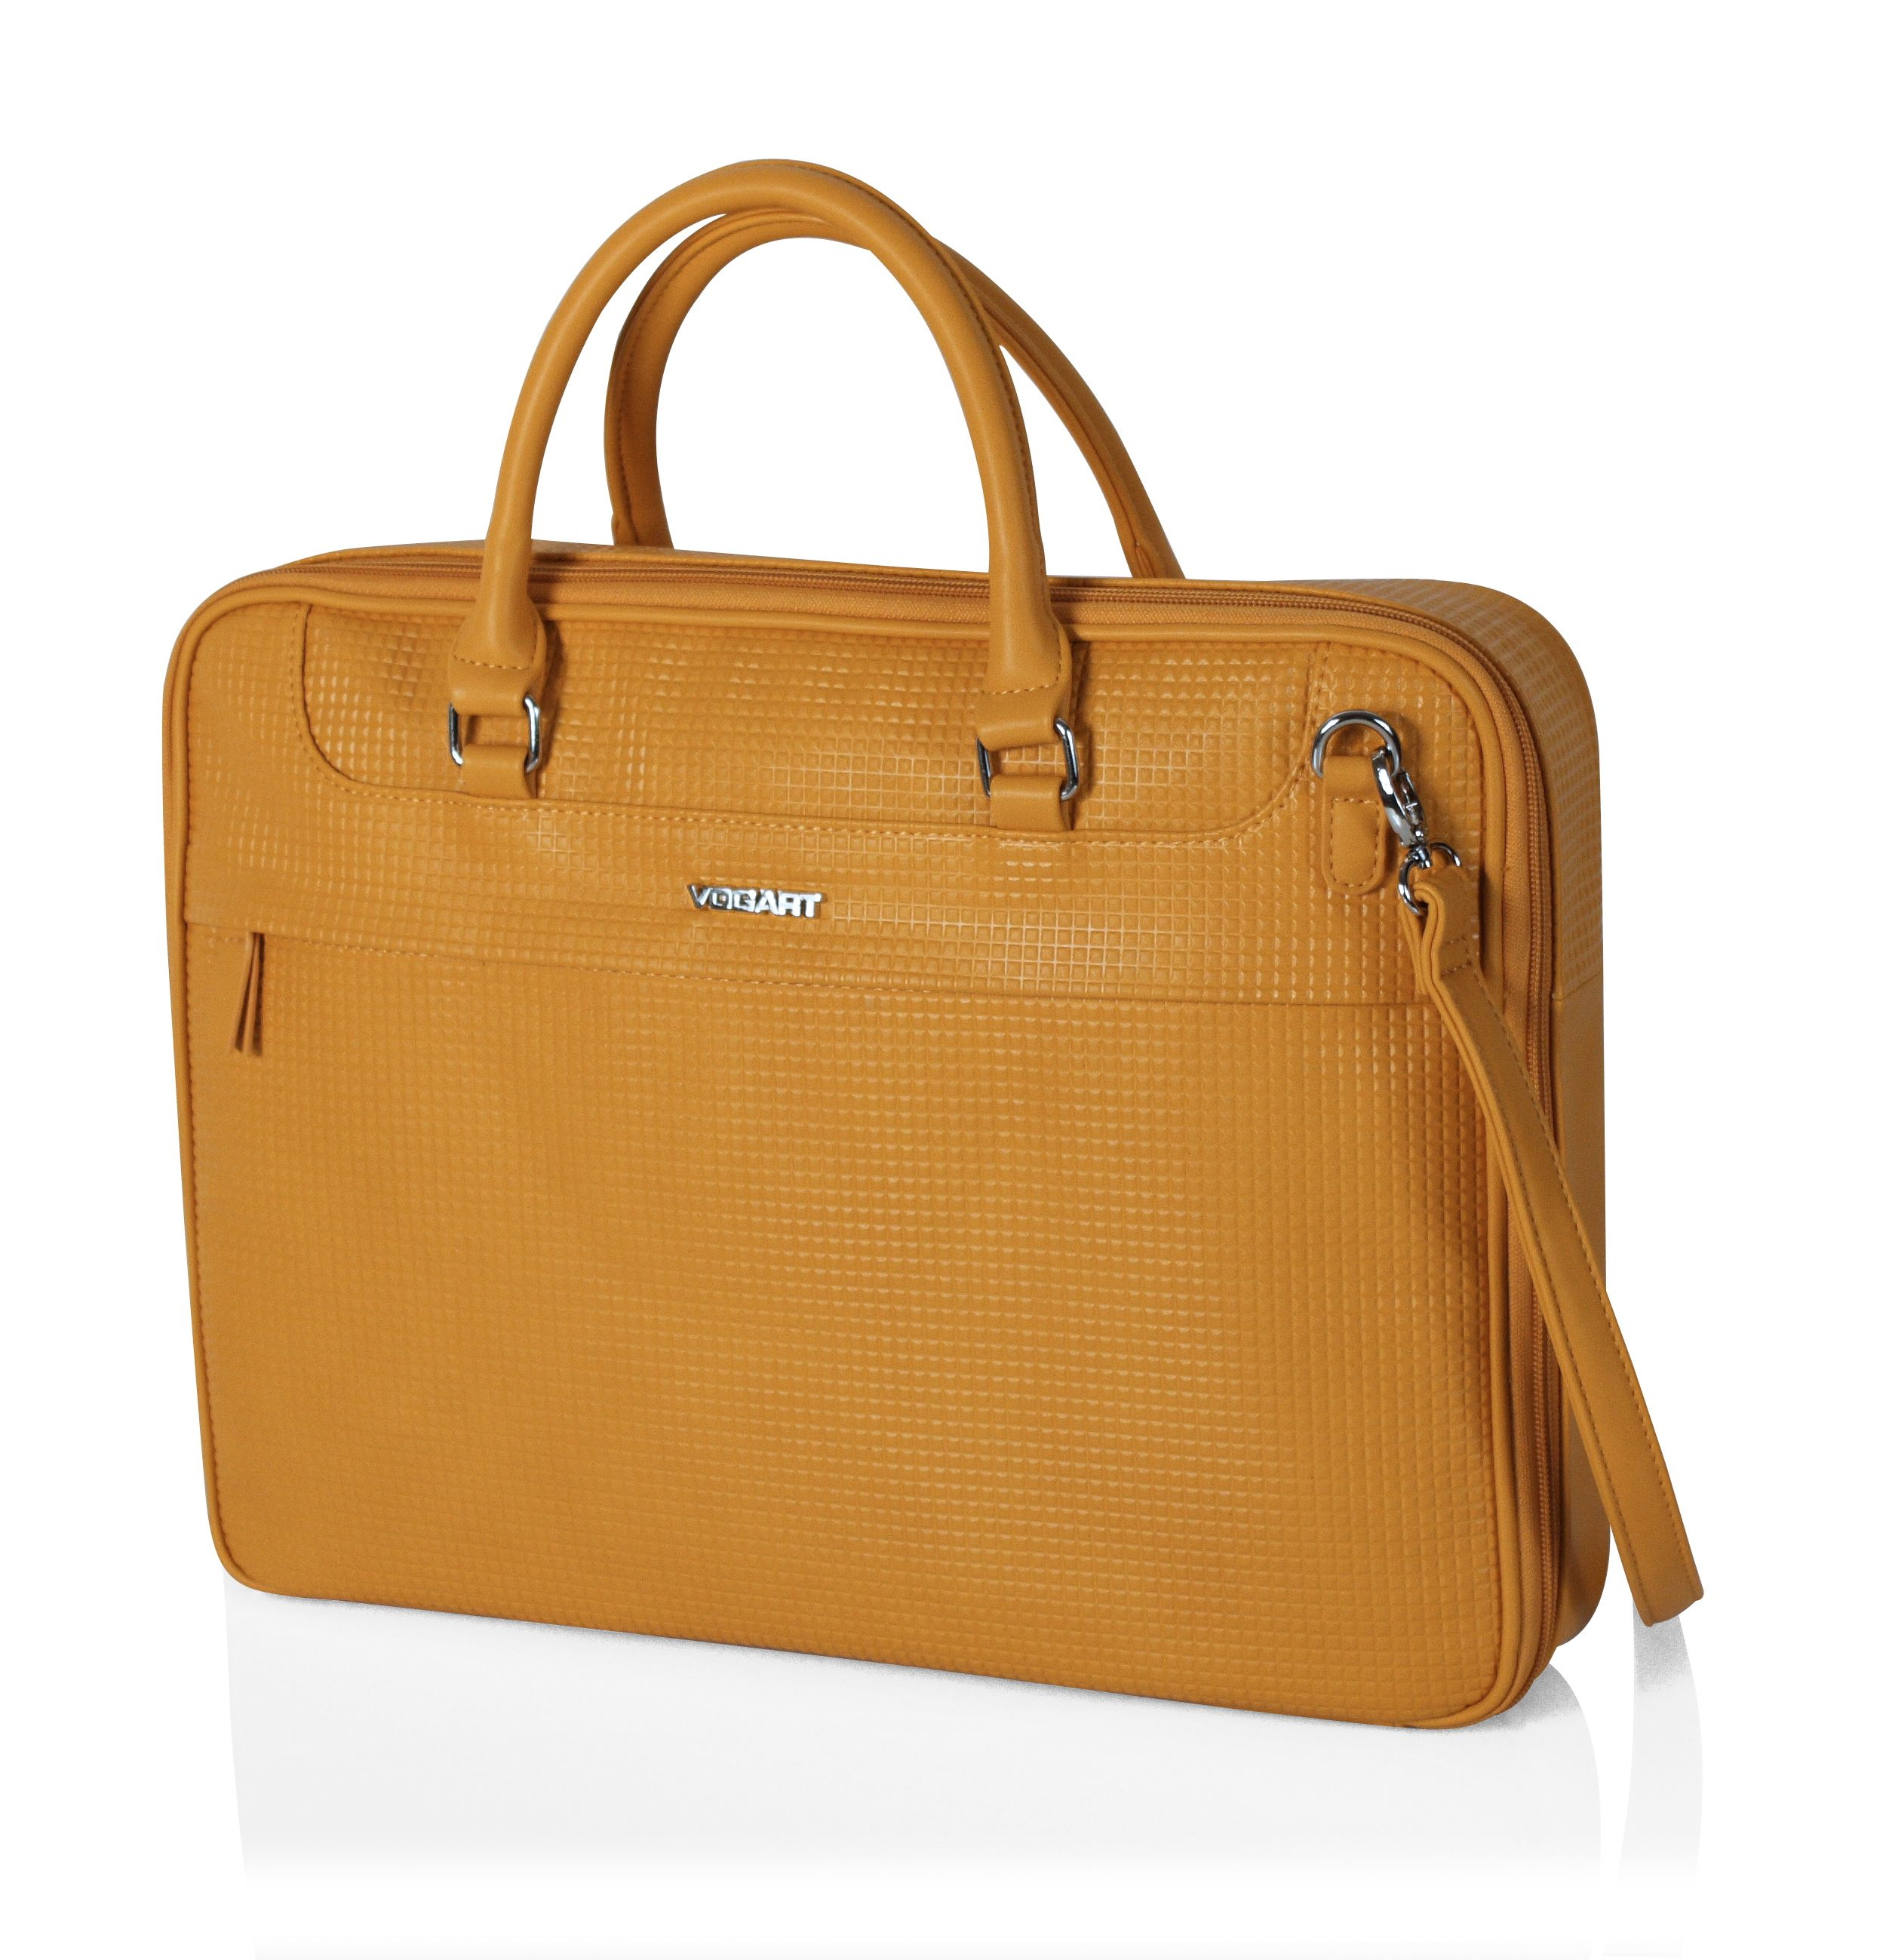 c60dfa5a3 Cartera VOGART Essence #work #trabajo #fashion #moda #briefcase #cartera  #portadocumentos